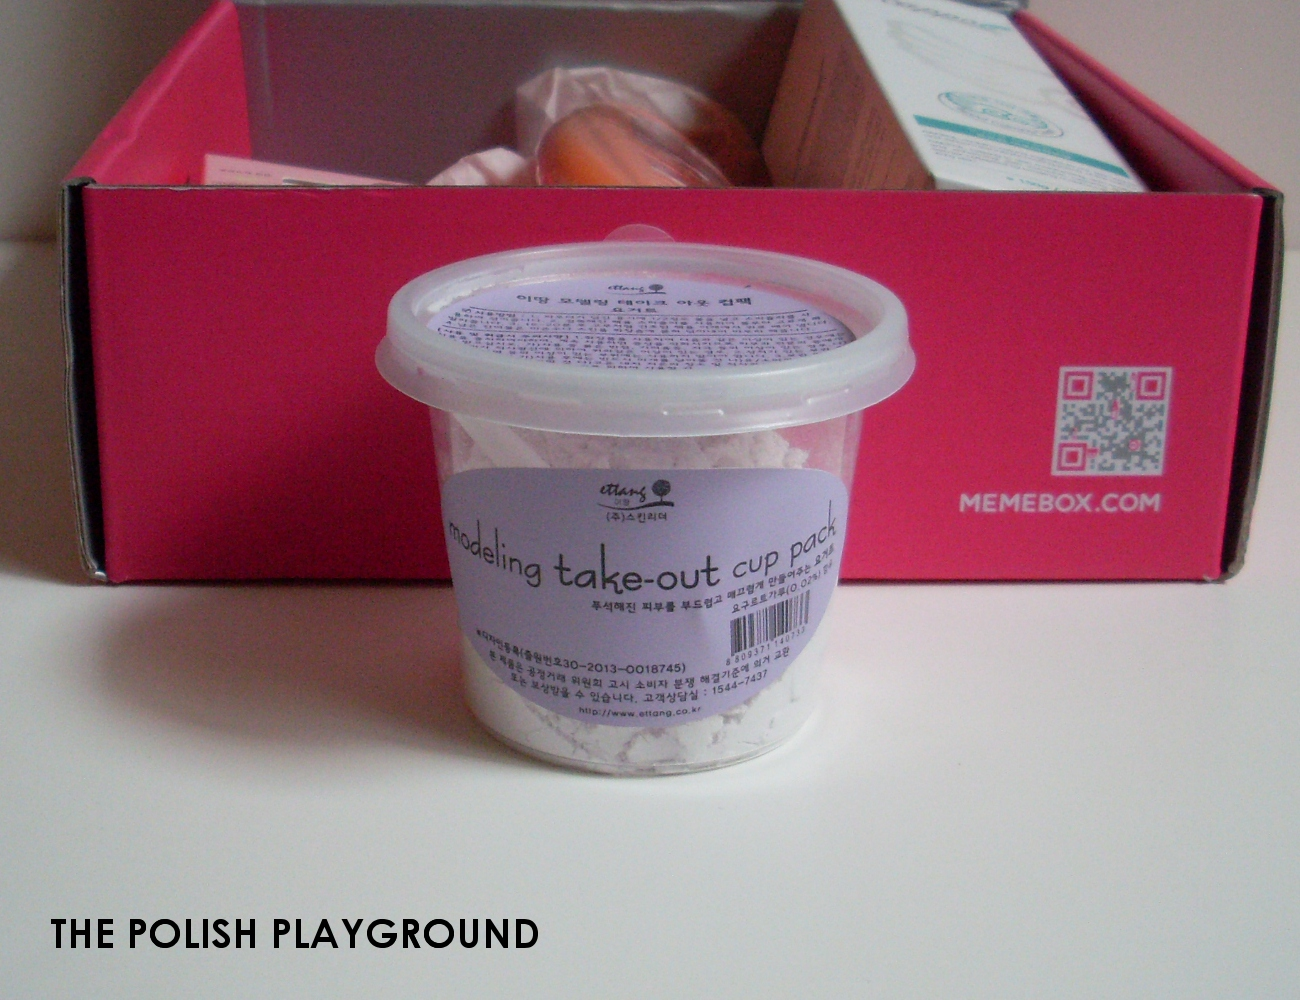 Memebox Superbox #54 Yogurt Cosmetics Unboxing - ettang Modeling Take-out Cup Pack Yogurt